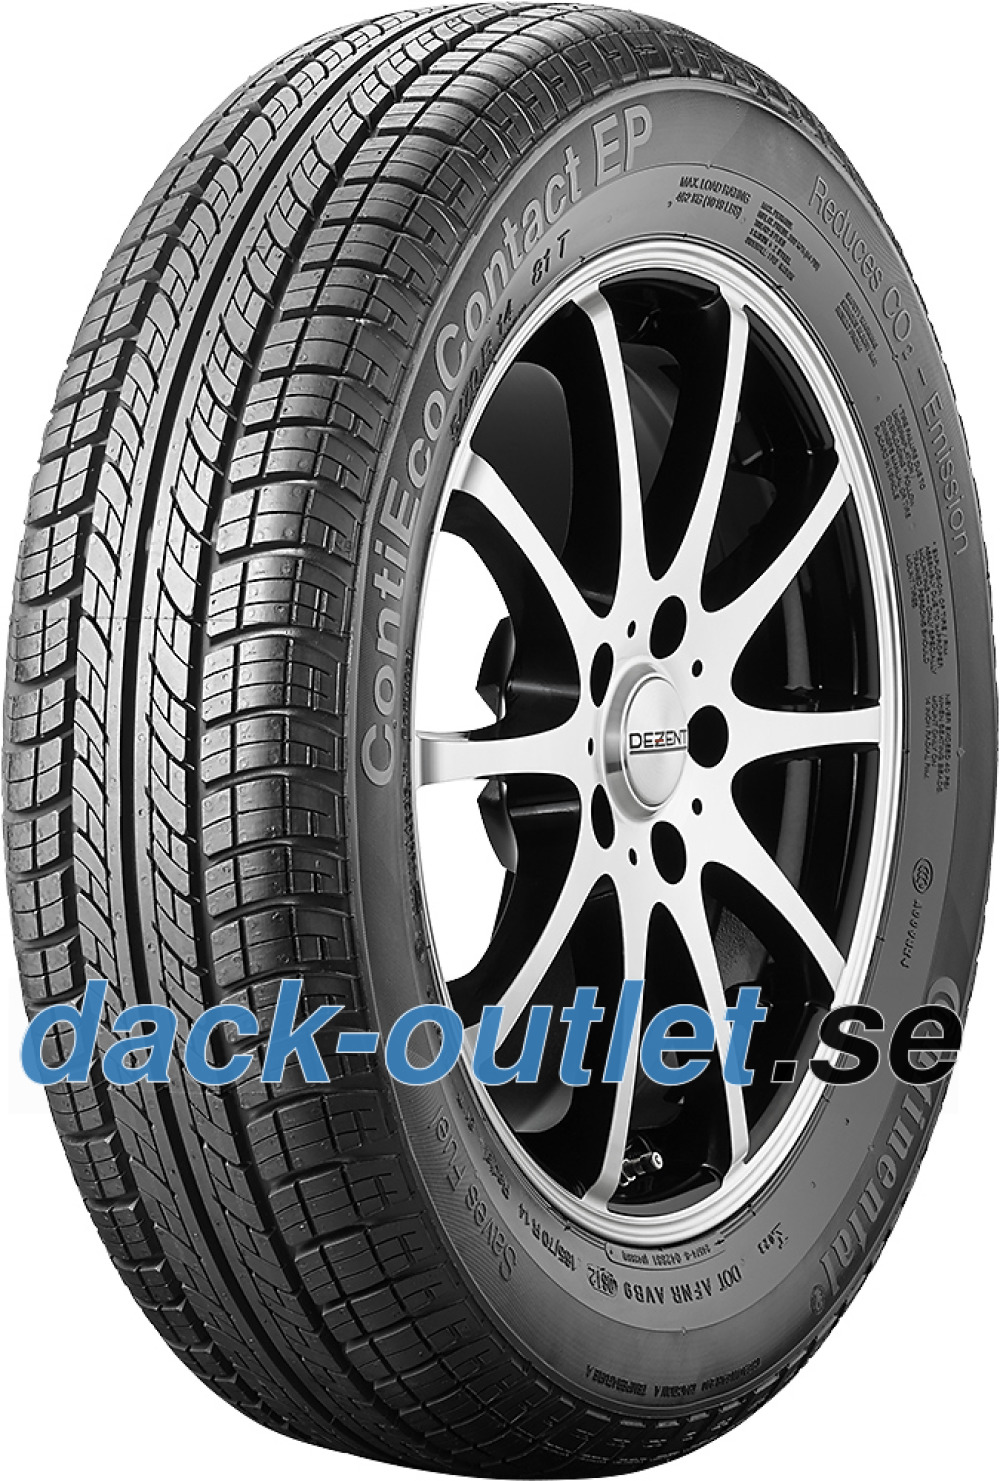 Continental EcoContact EP ( 145/65 R15 72T med fälgskydd )